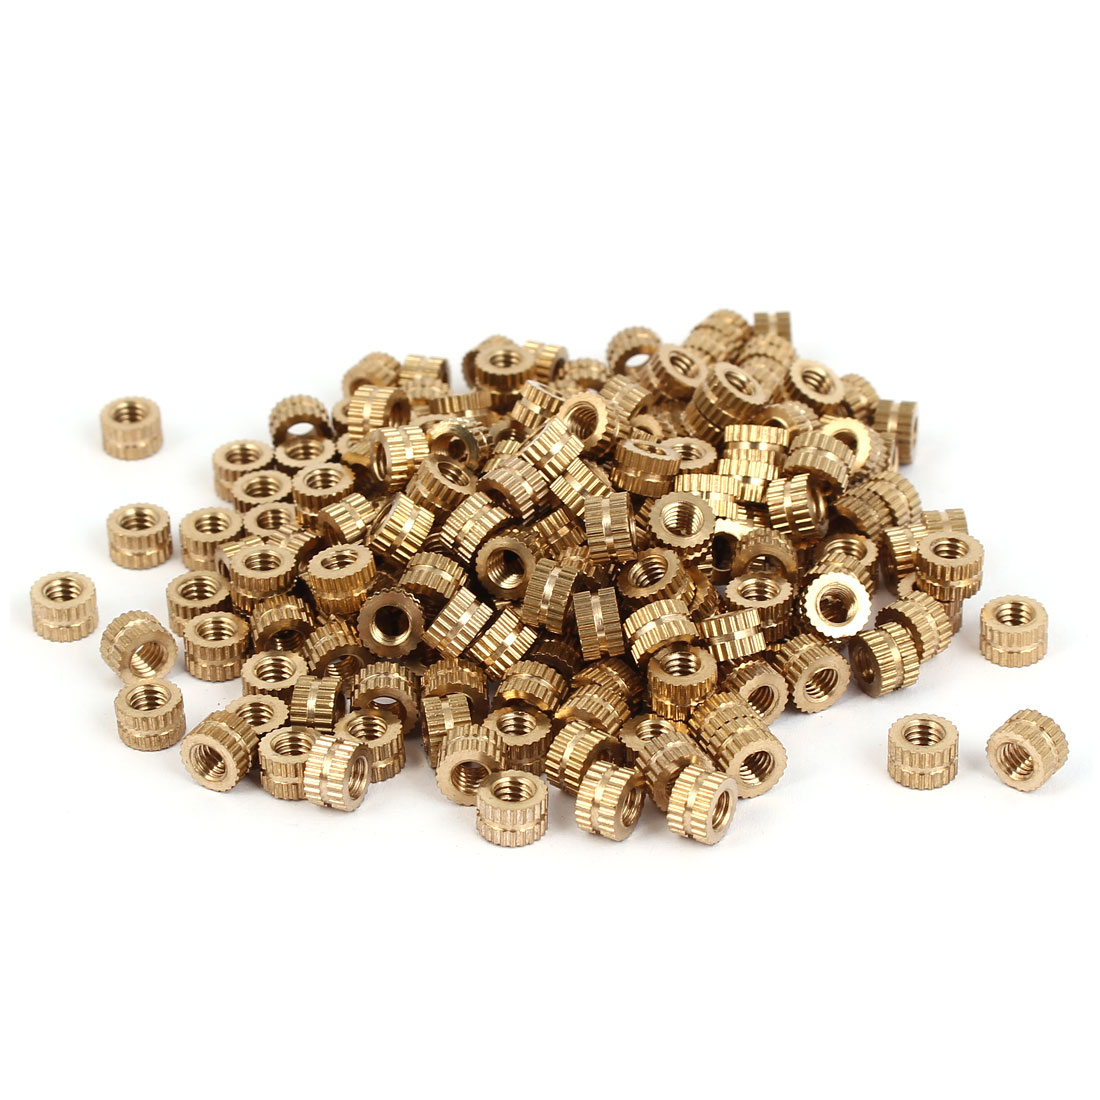 M4 x 4mm Brass Cylinder Injection Molding Knurled Insert Embedded Nuts 200PCS